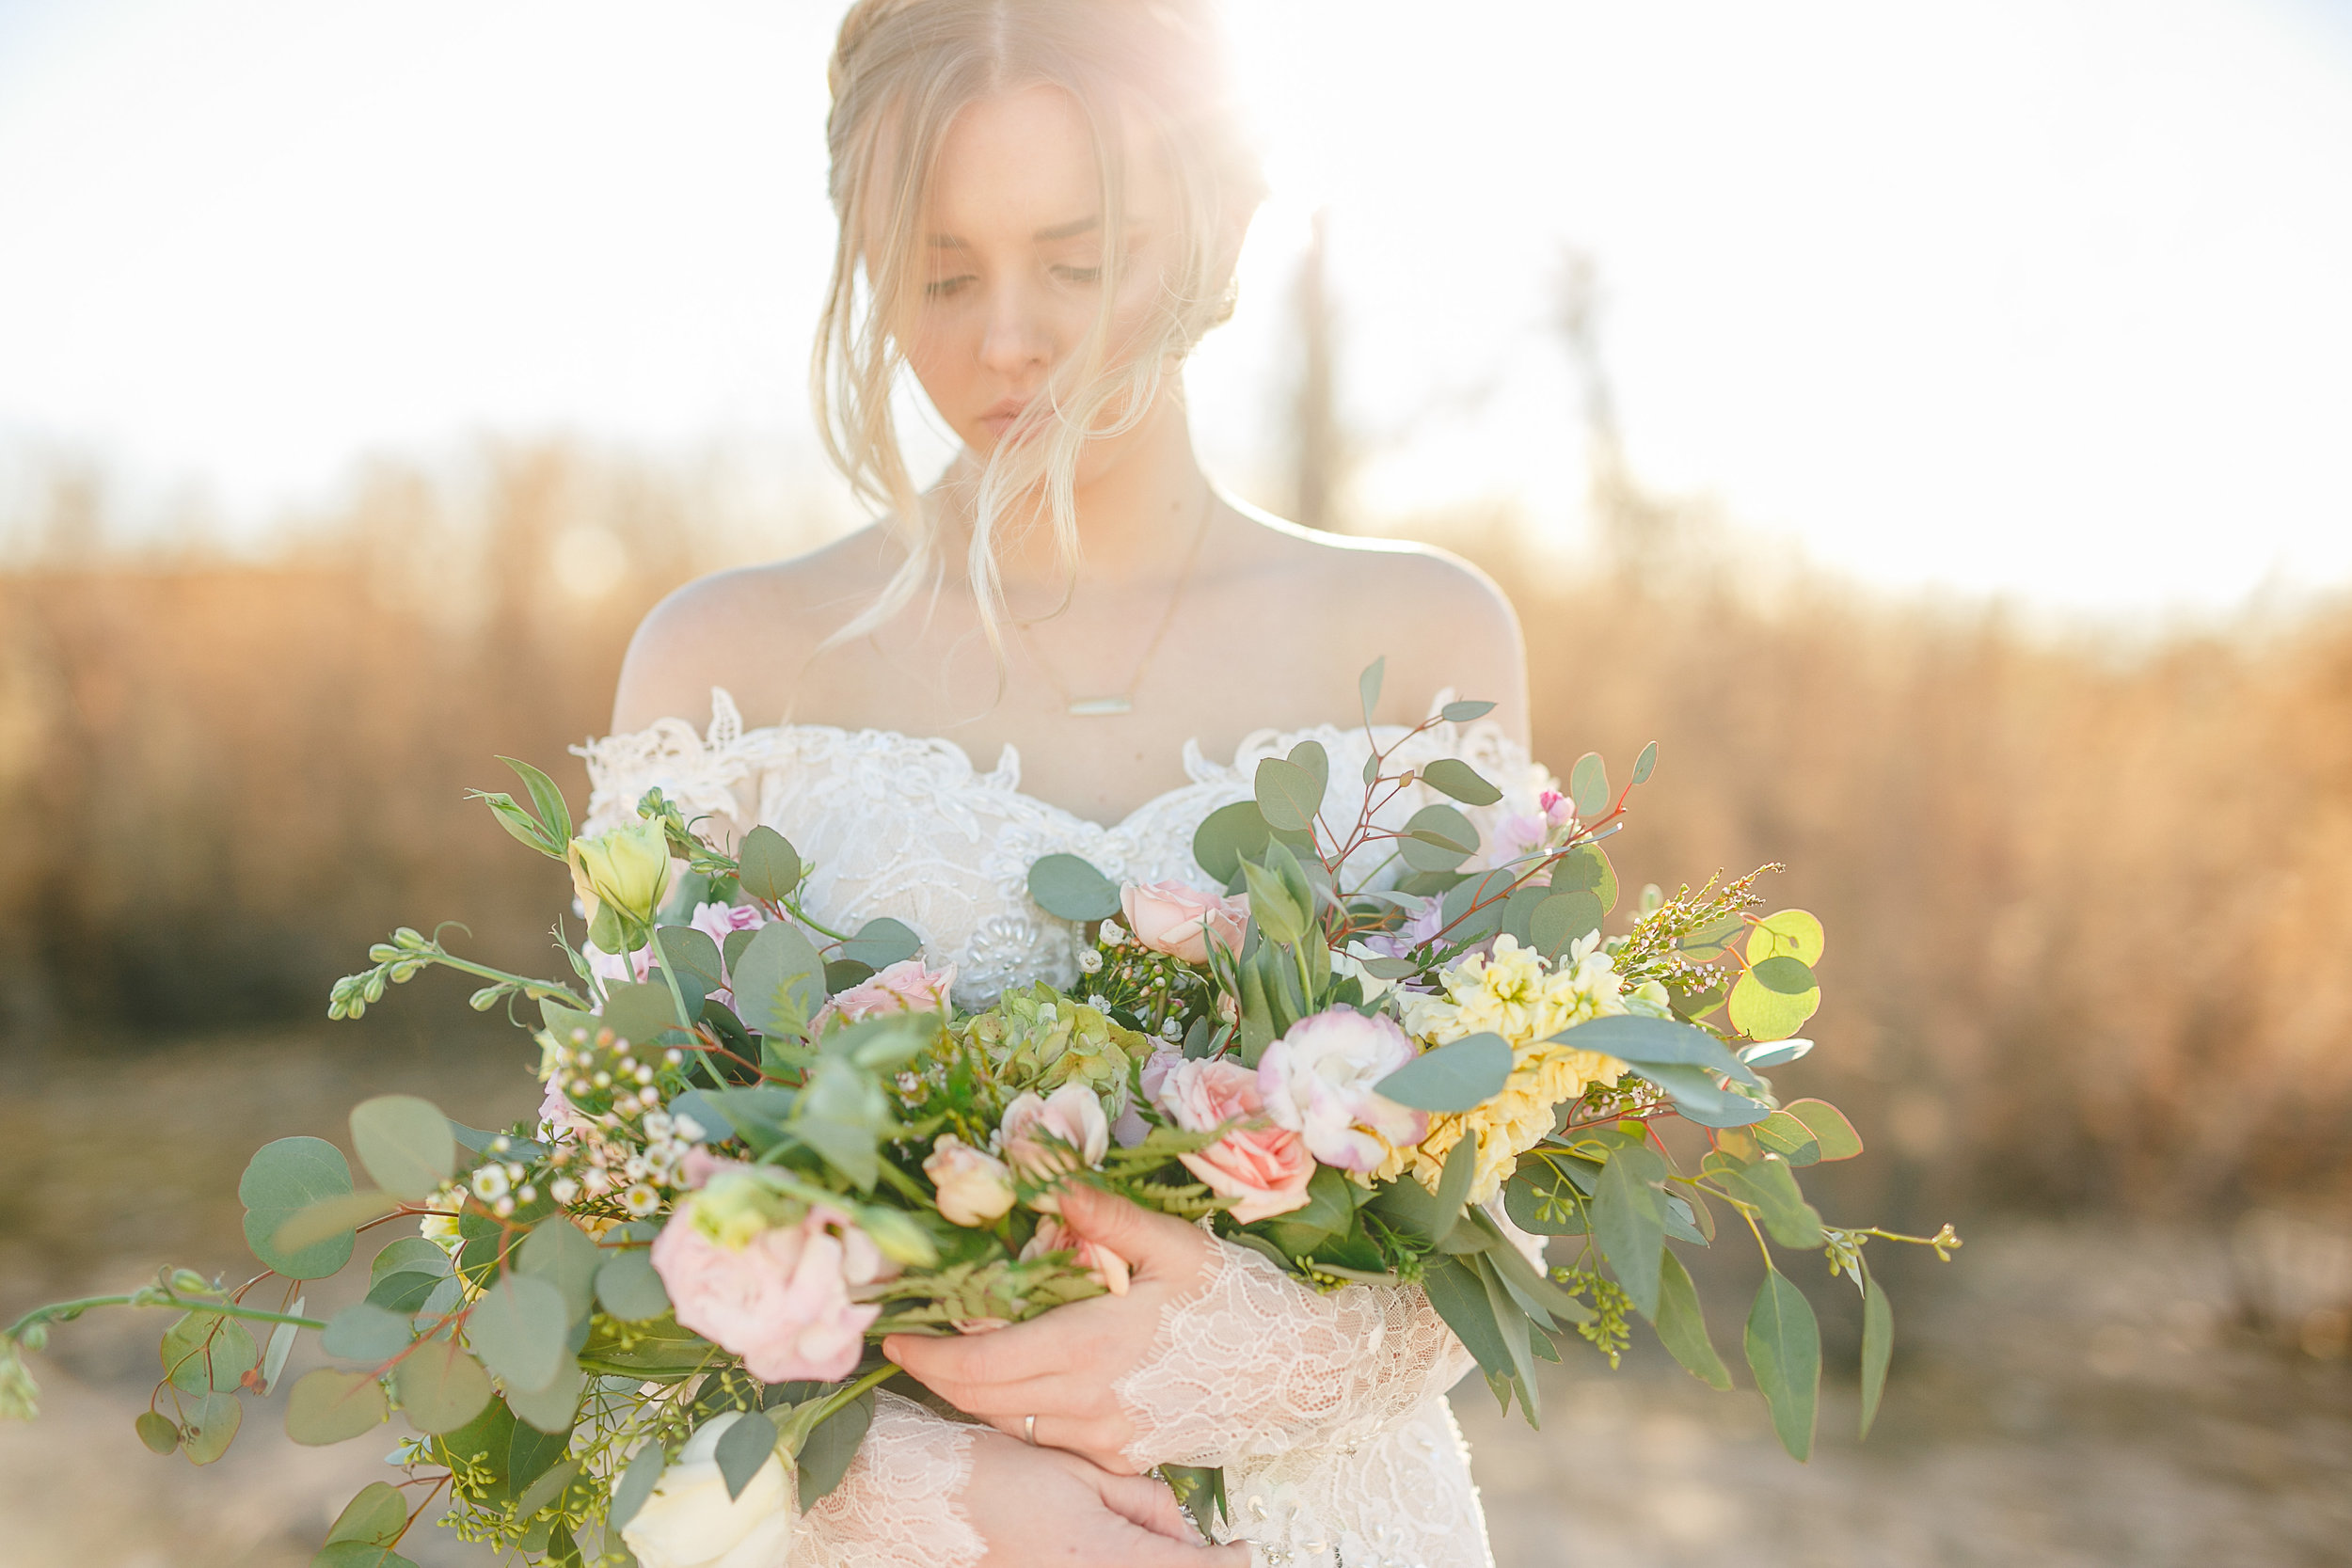 Check out one of my favorite shoots Featured on Utah Valley Bride Blog! You can find it  HERE !